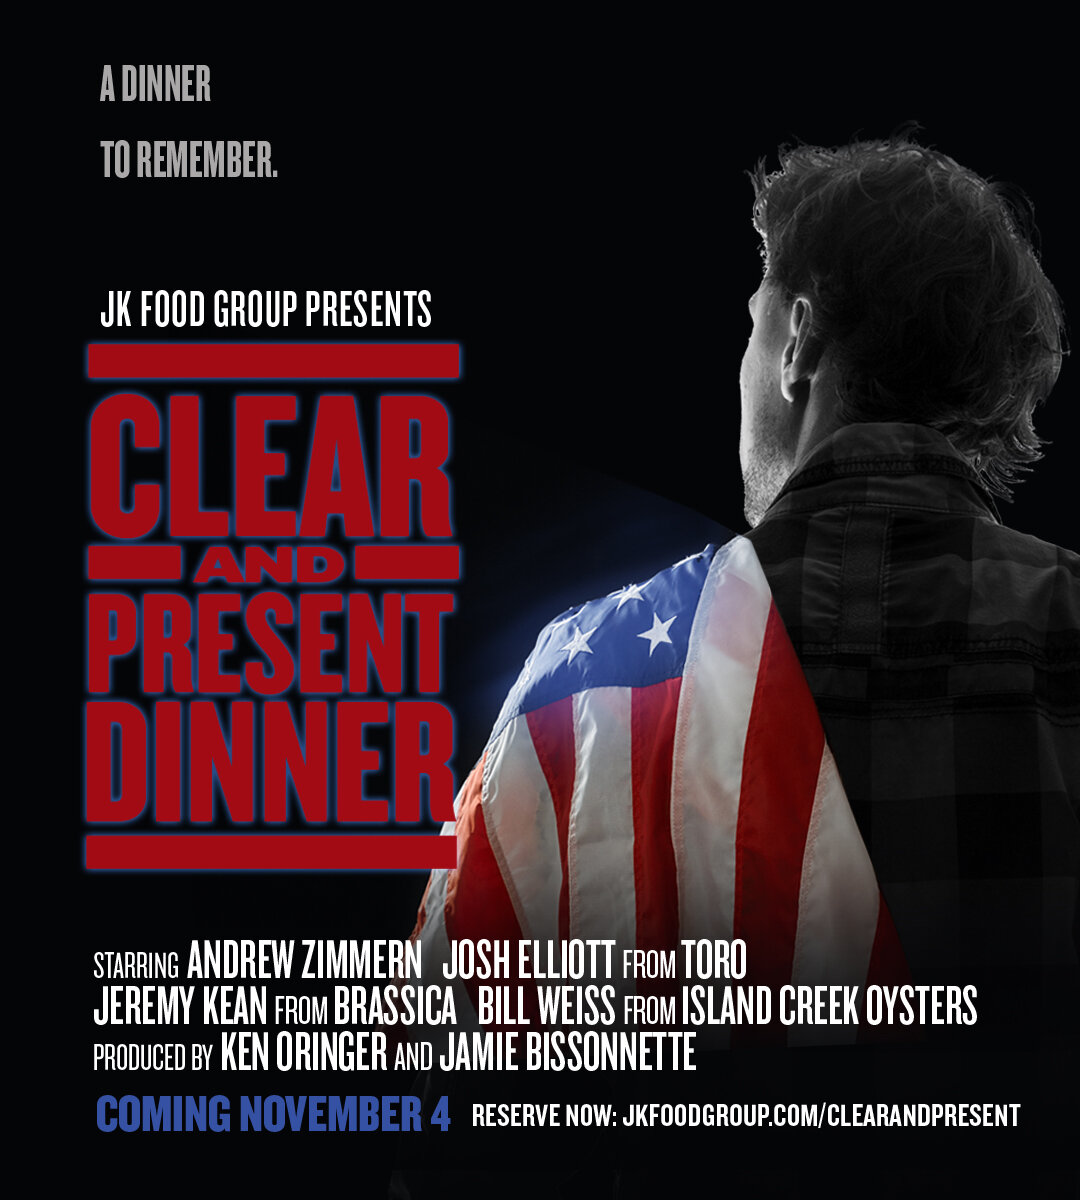 Clear and Present Dinner - This November…. A Dinner to Remember